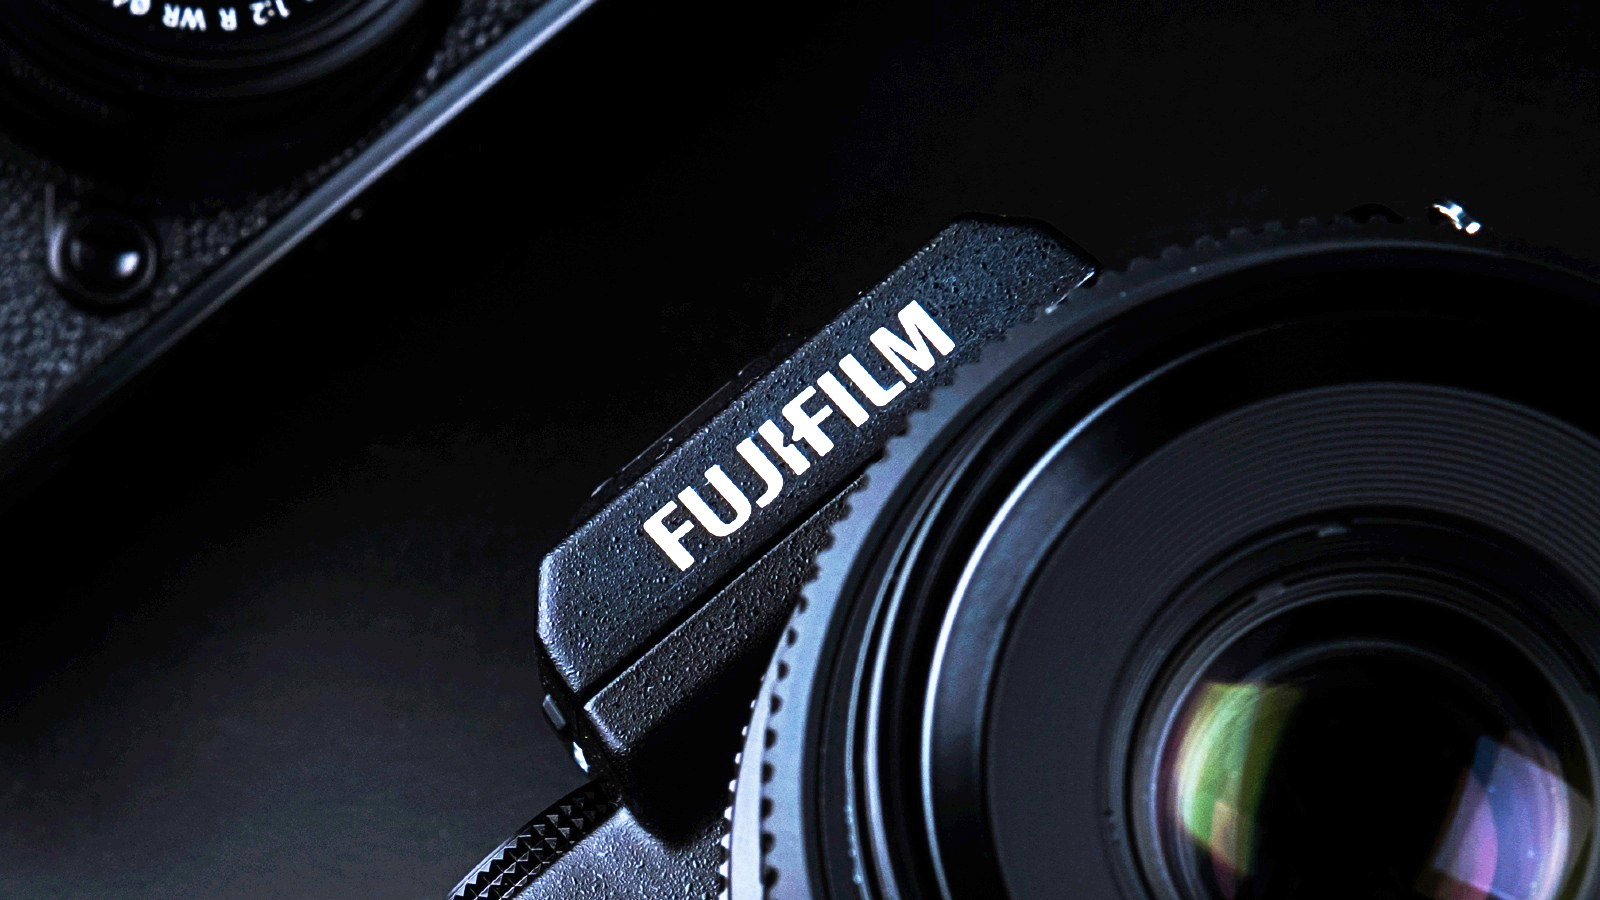 FUJIFILM shuts down network after suspected ransomware attack